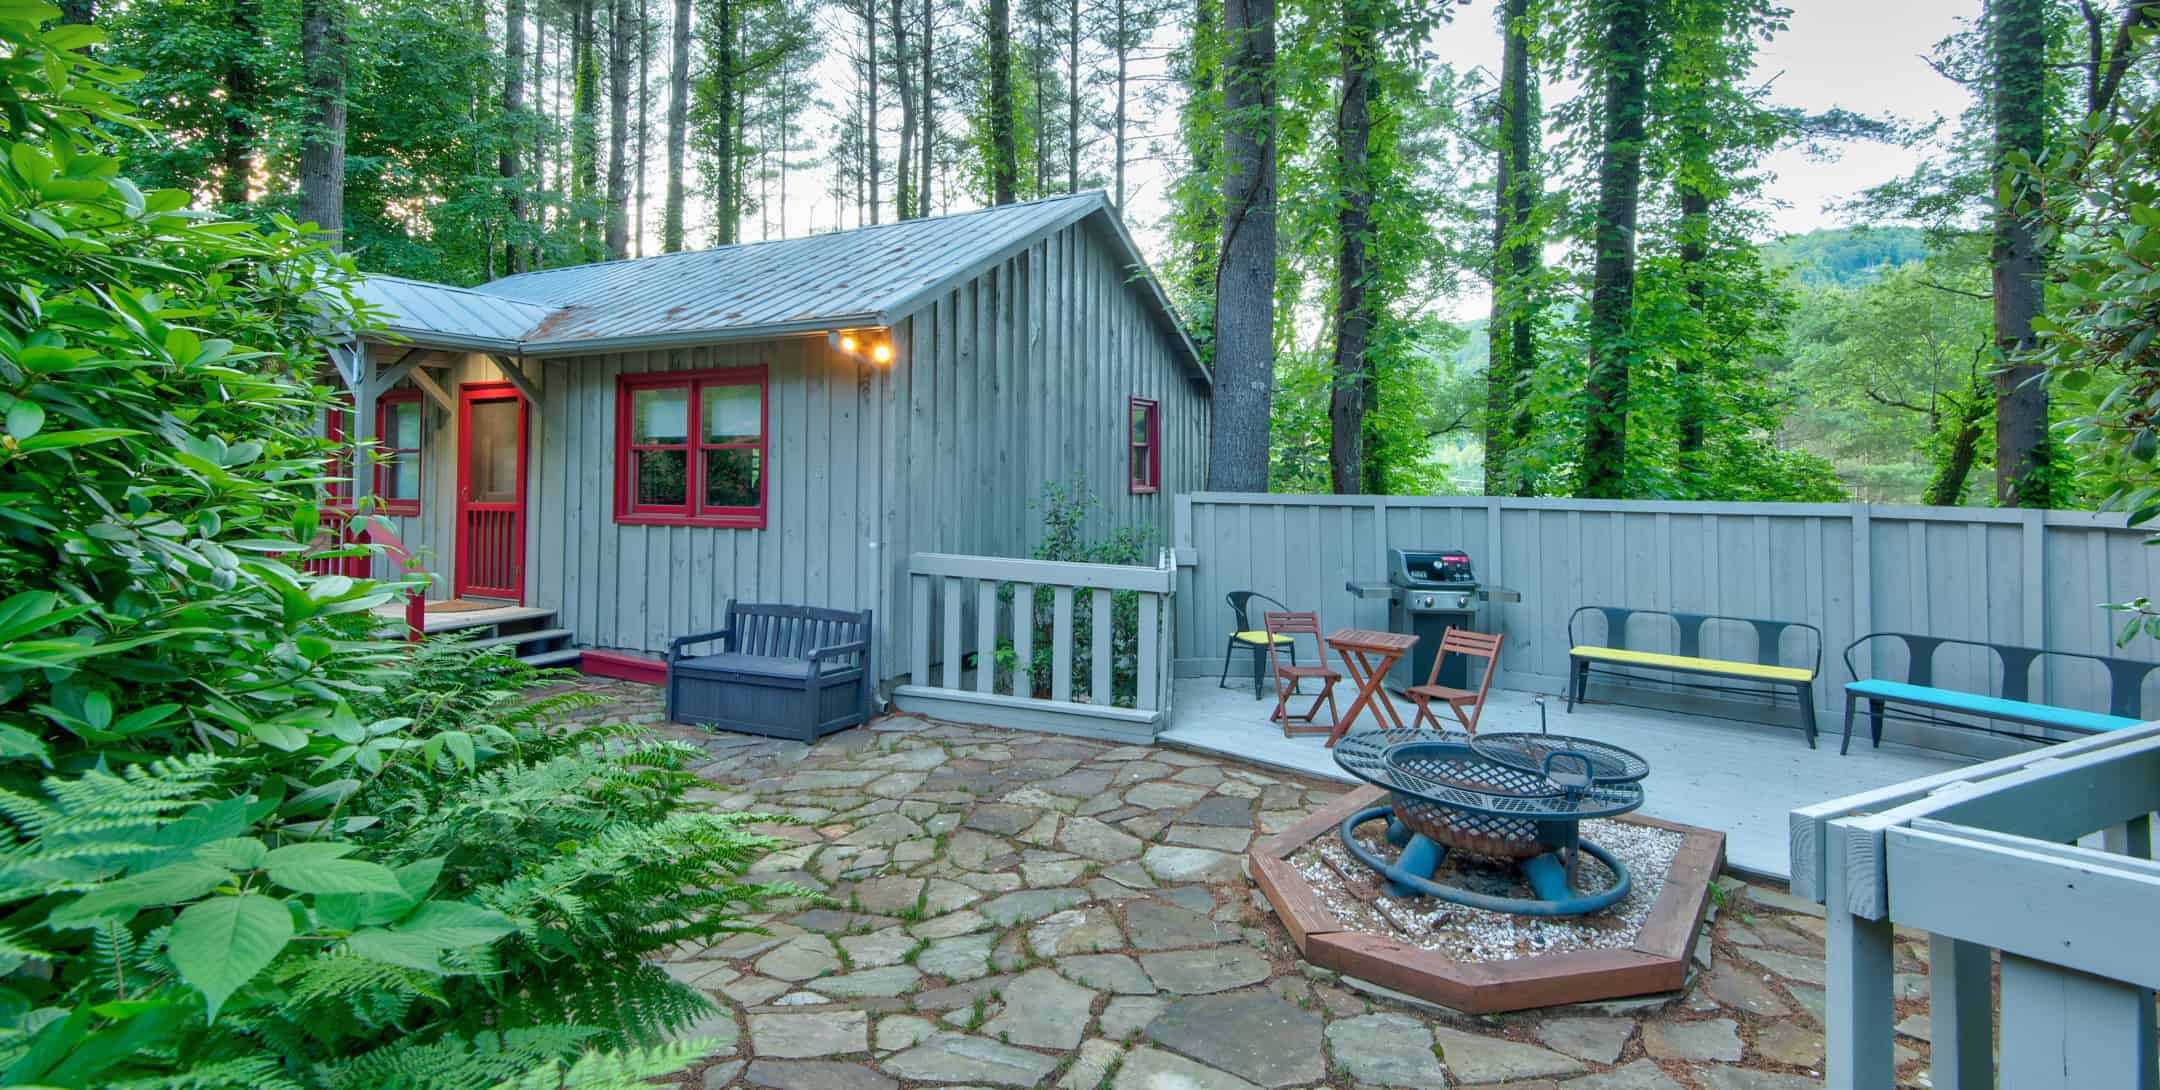 Maple Spring Cabin exterior with firepit and bbq